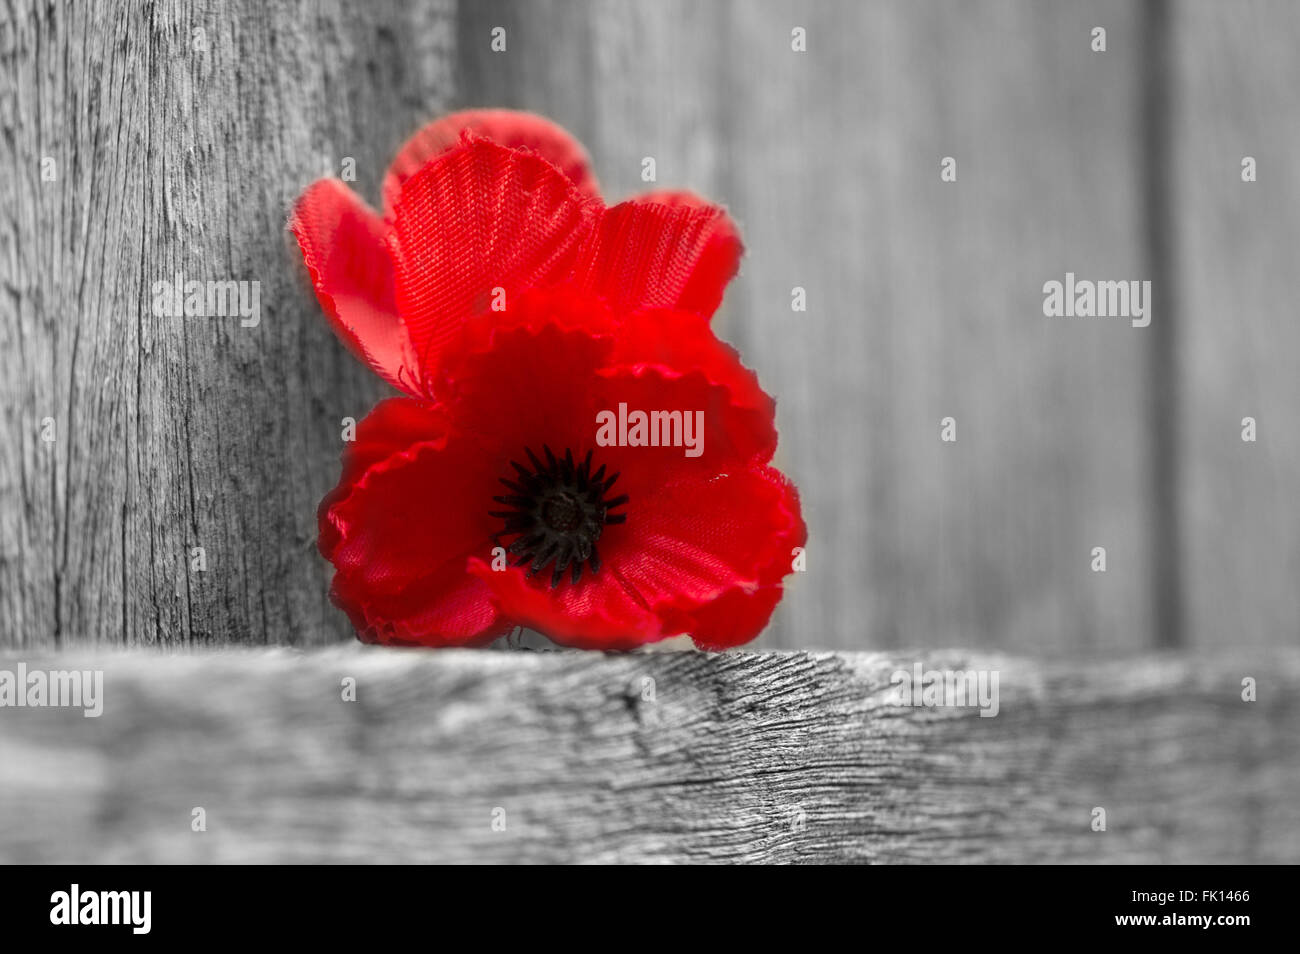 Red poppy flowers for remembrance day lest we forget stock photo red poppy flowers for remembrance day lest we forget mightylinksfo